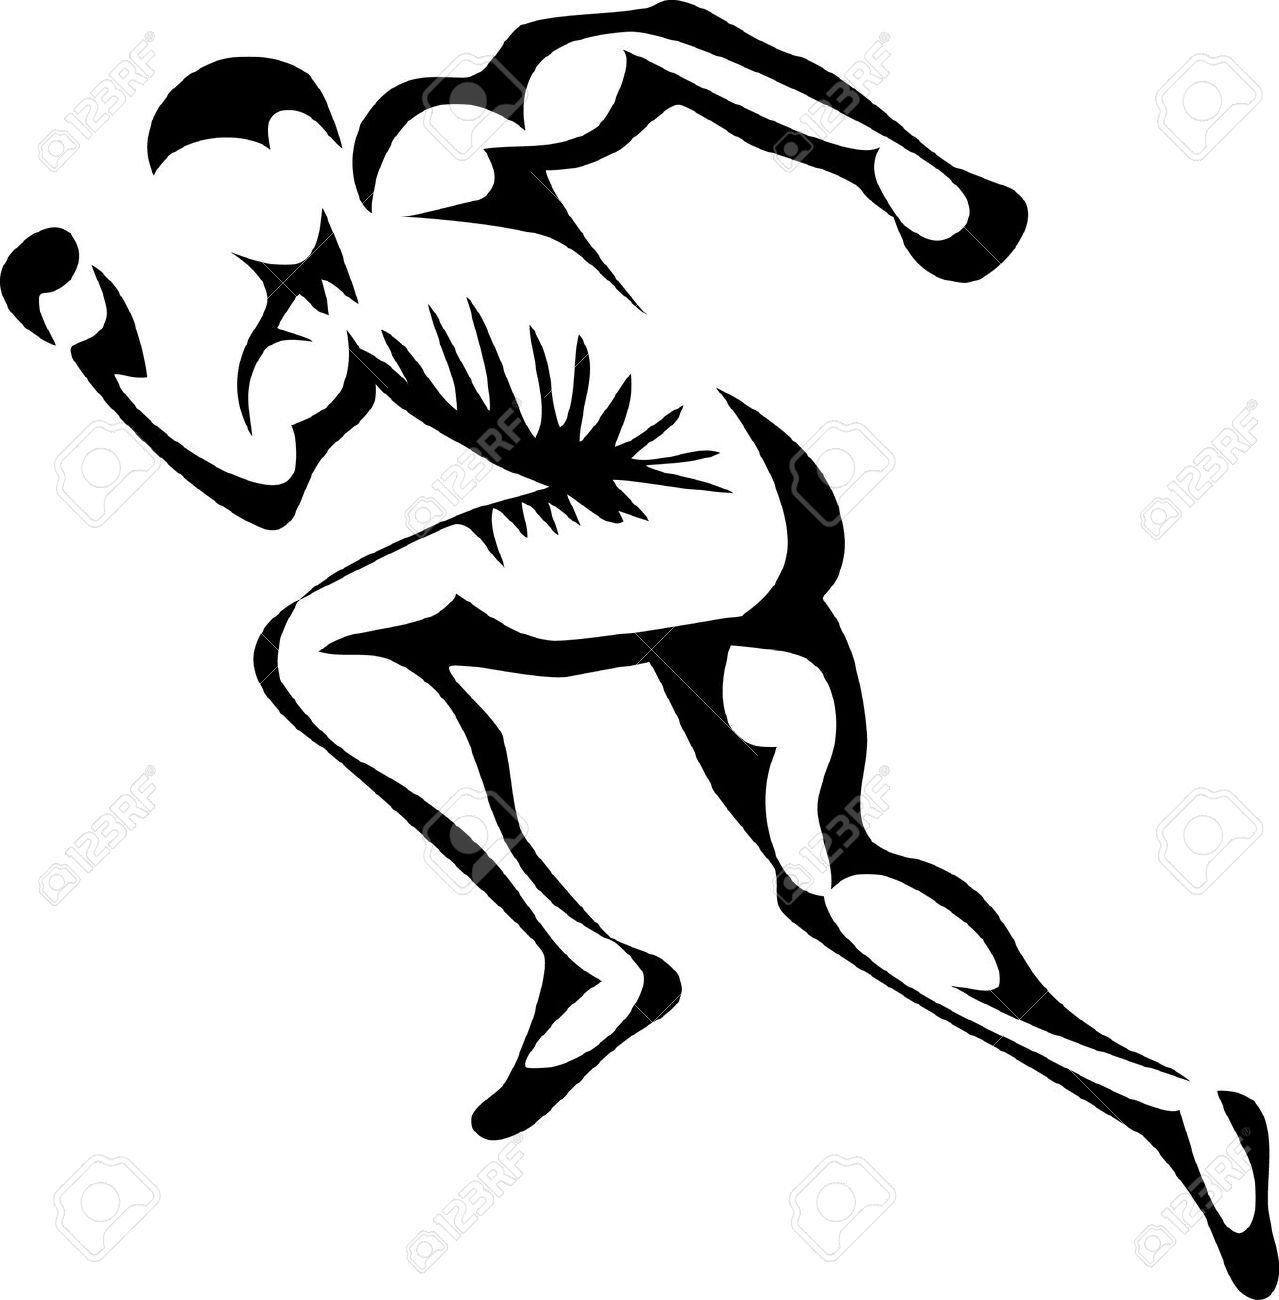 Athletic clipart runner. Silhouette clip art at